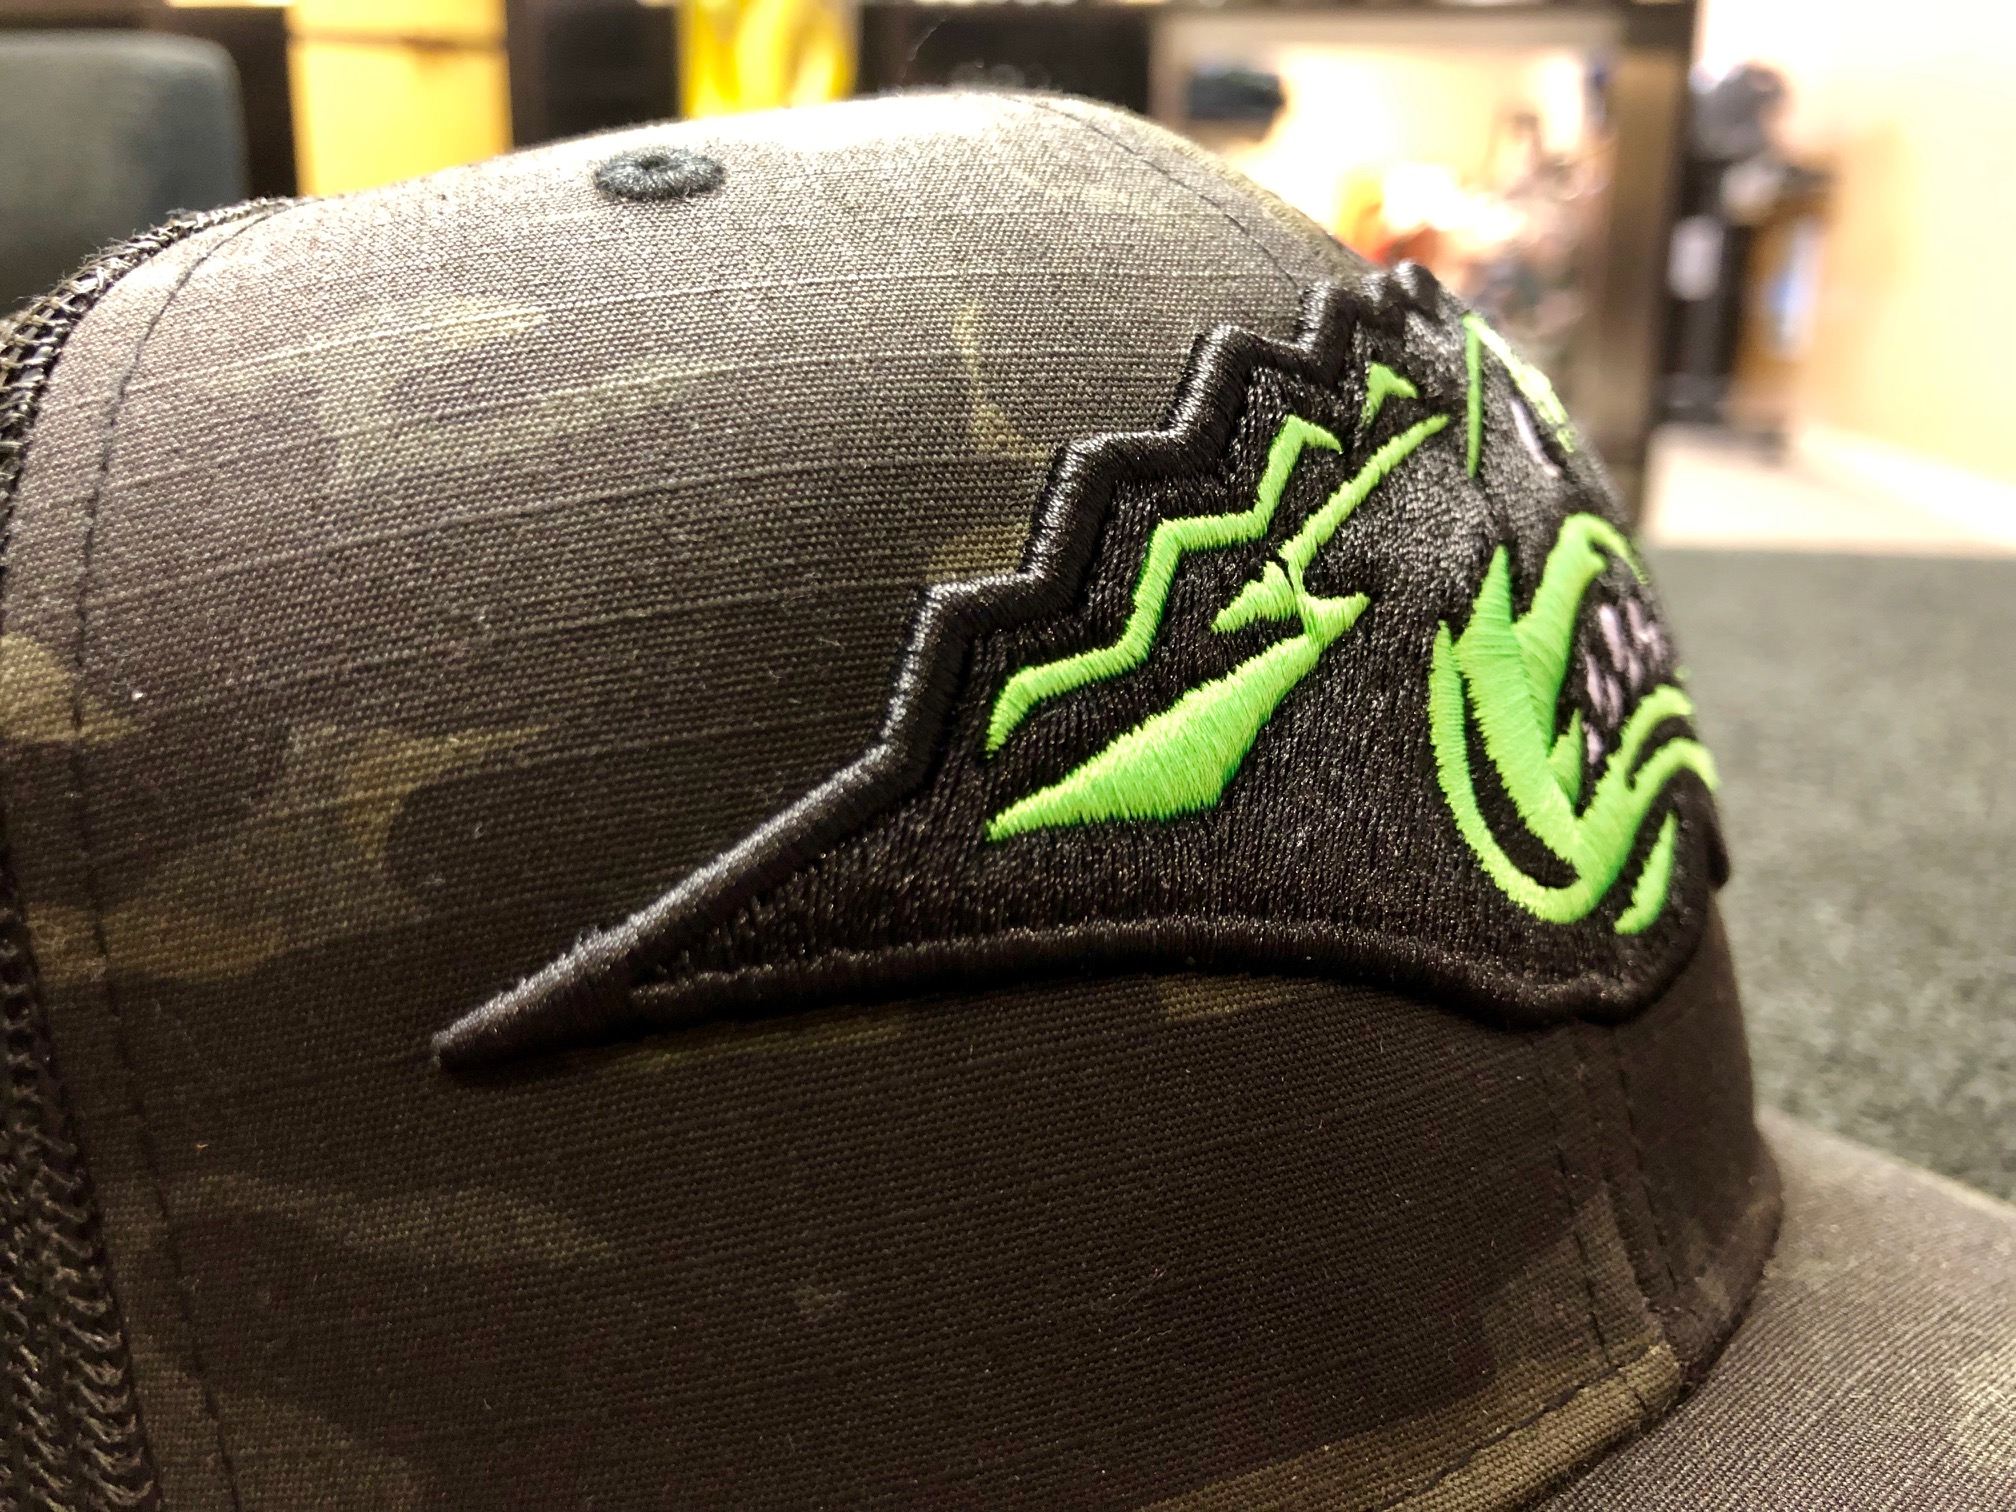 logounltd_laser_etching_embroidery_screen_printing_apparel_uniform_custom_tshirts_kirkland_bellevue_seattle_redmond_woodinville_branded_merchandise_promotional_products_logo_unltd_green_river_college_hat (5).jpg